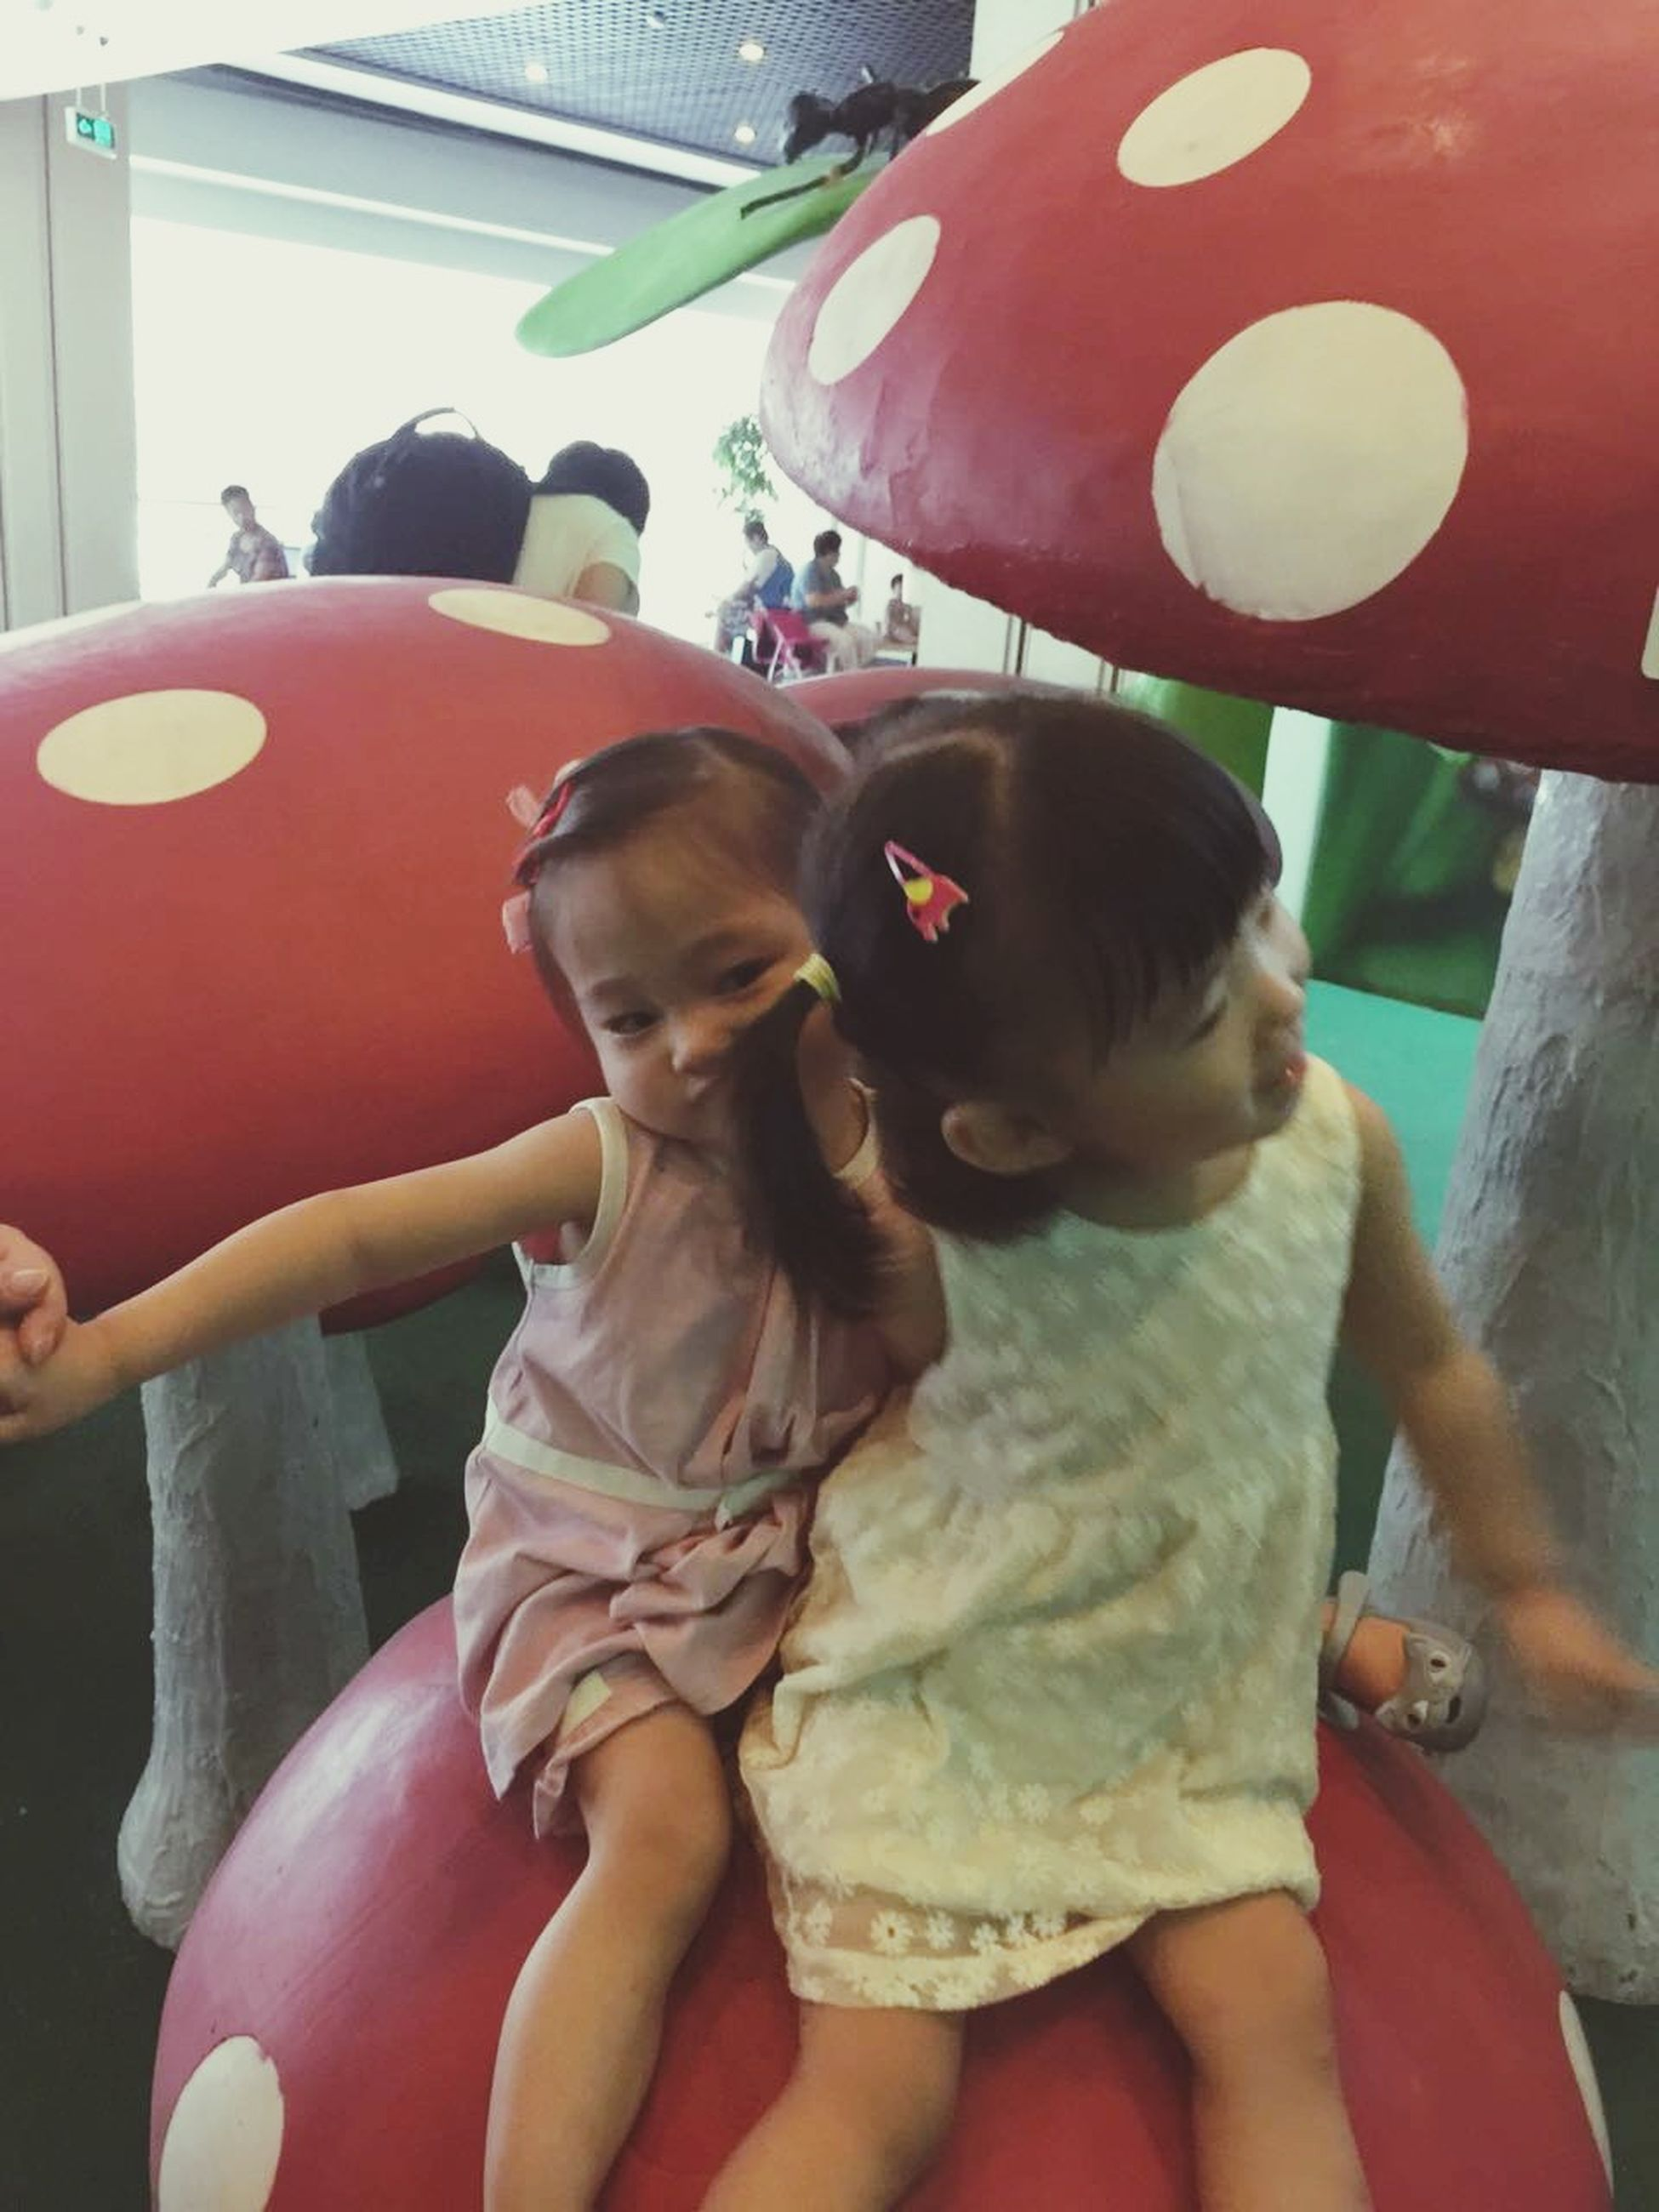 lifestyles, leisure activity, togetherness, childhood, bonding, love, boys, girls, elementary age, holding, family, sitting, casual clothing, cute, person, innocence